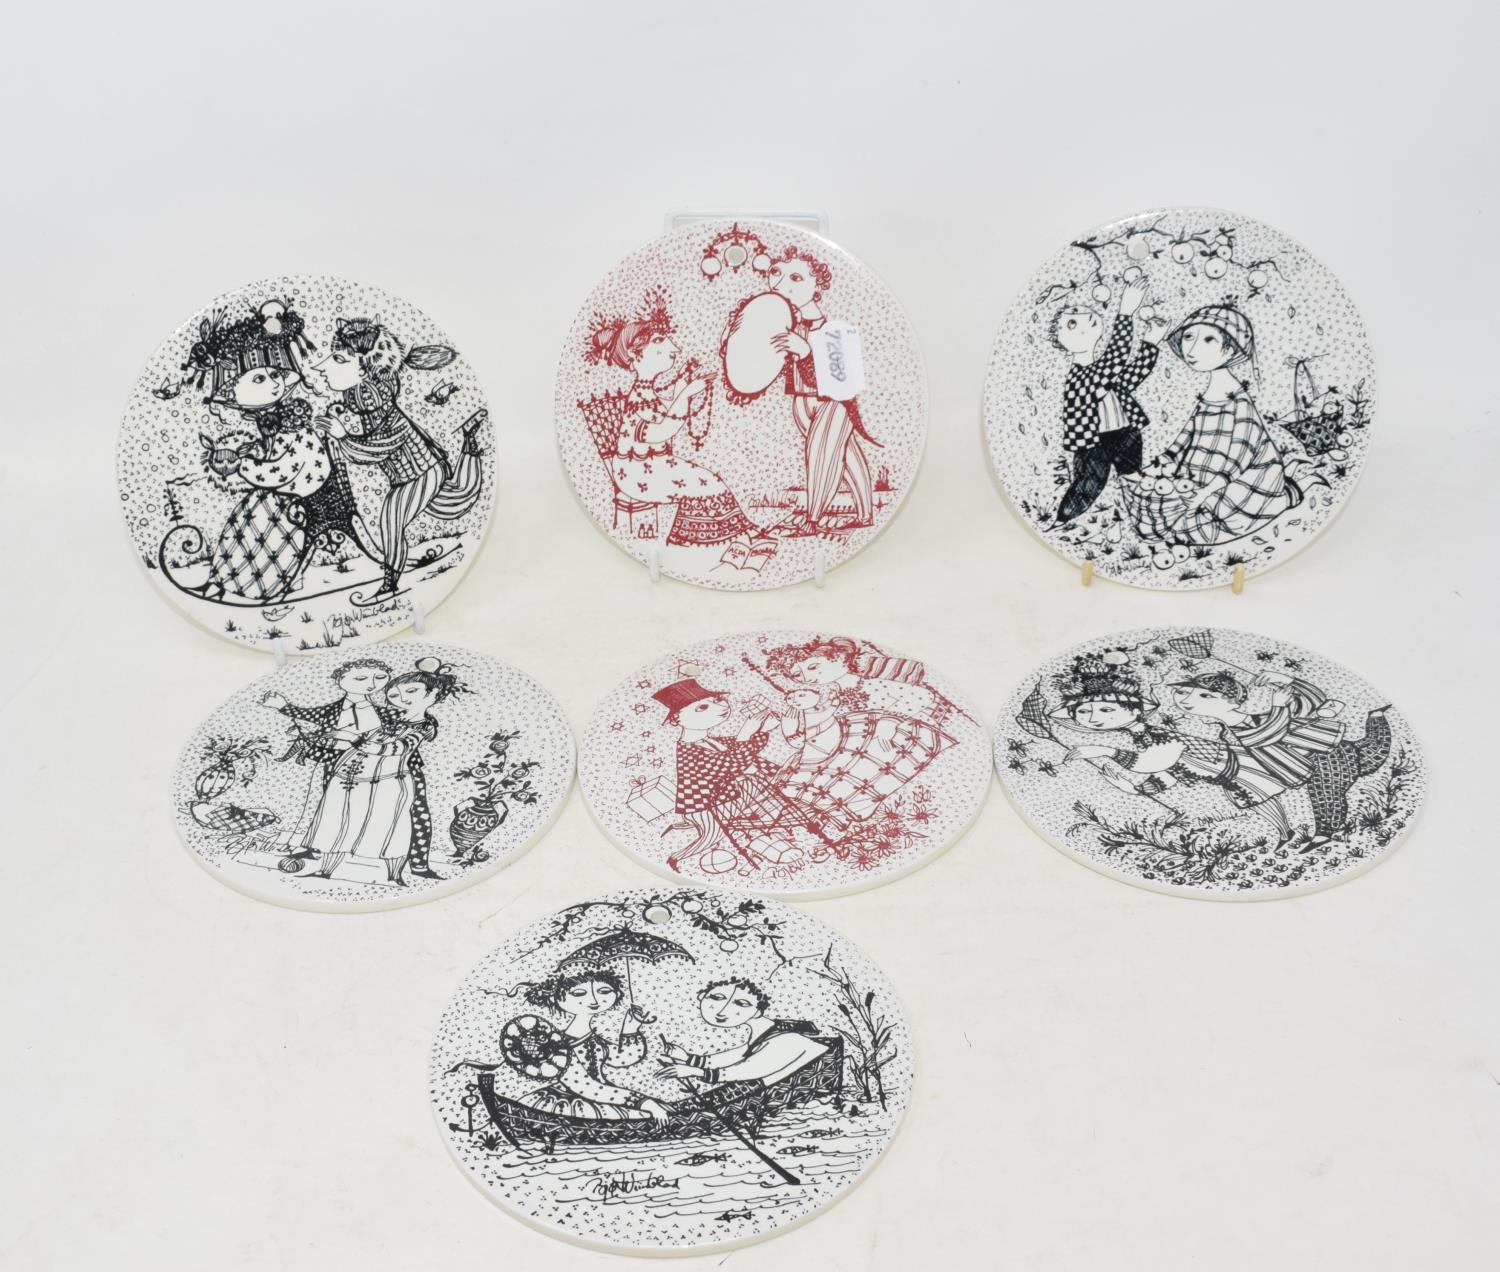 Lot 9 - A set of twelve Nymolle pottery plaques, months of the year, designed by Bjorn Wiinblad, one chipped